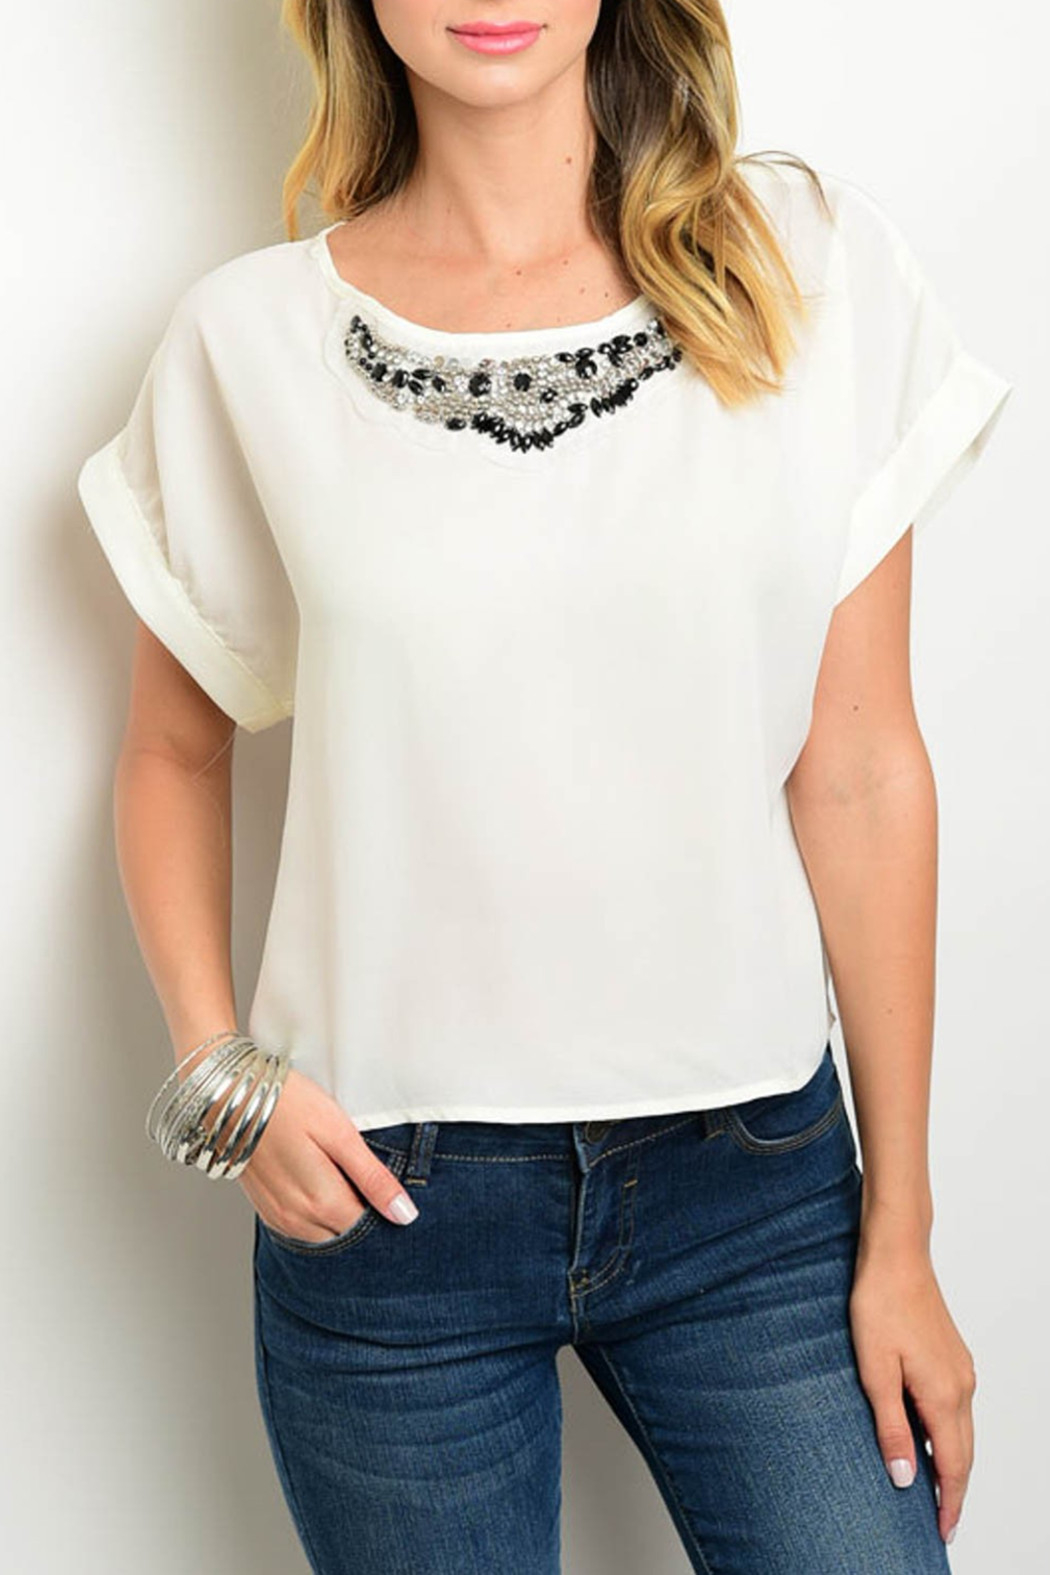 Miley and Molly Ivory Embellished Top - Main Image